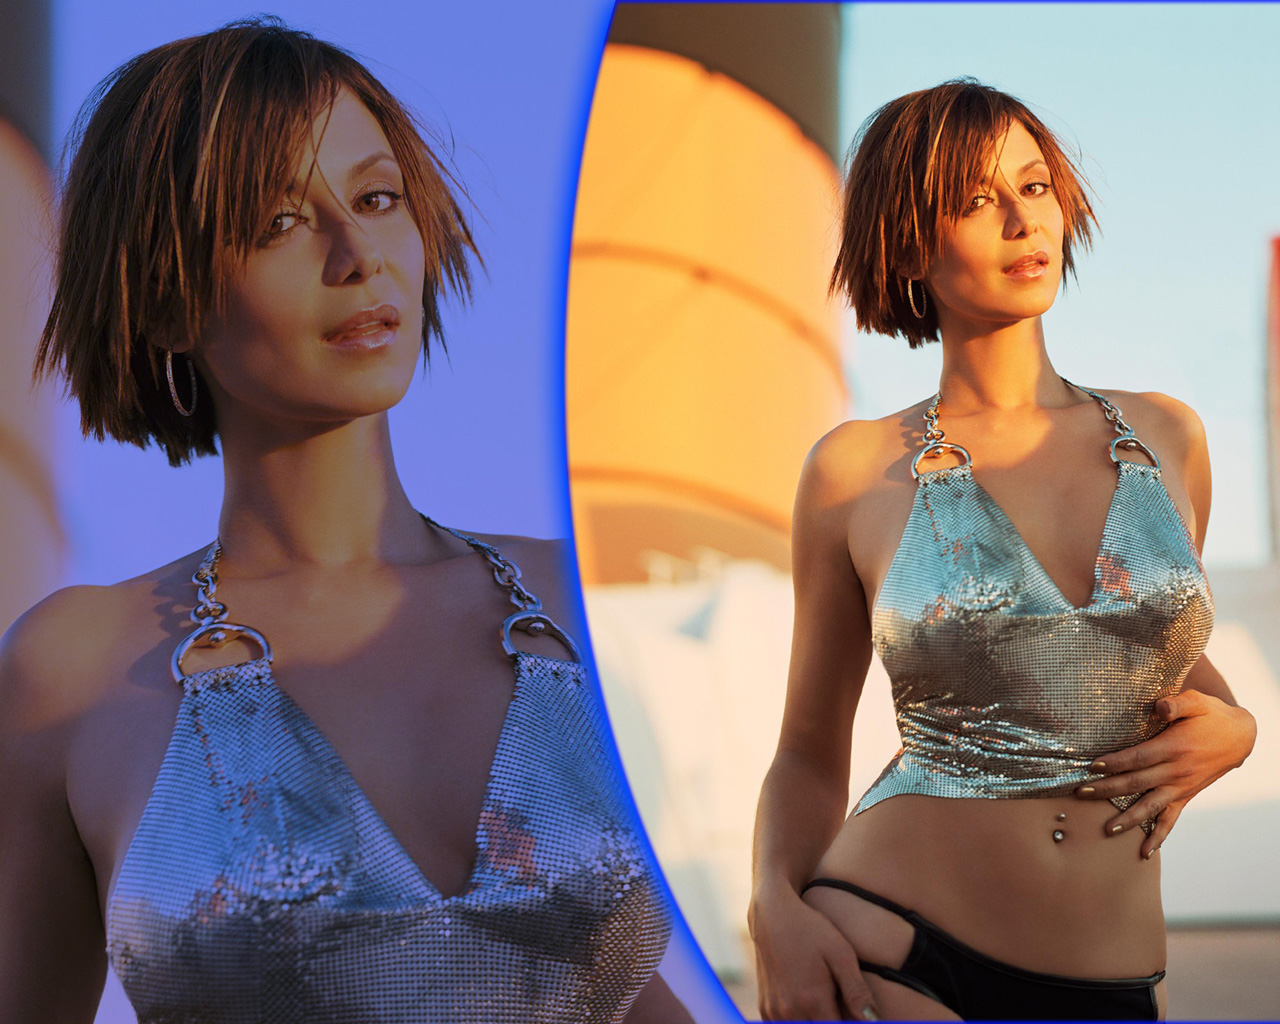 1280x1024 - Catherine Bell Wallpapers 32